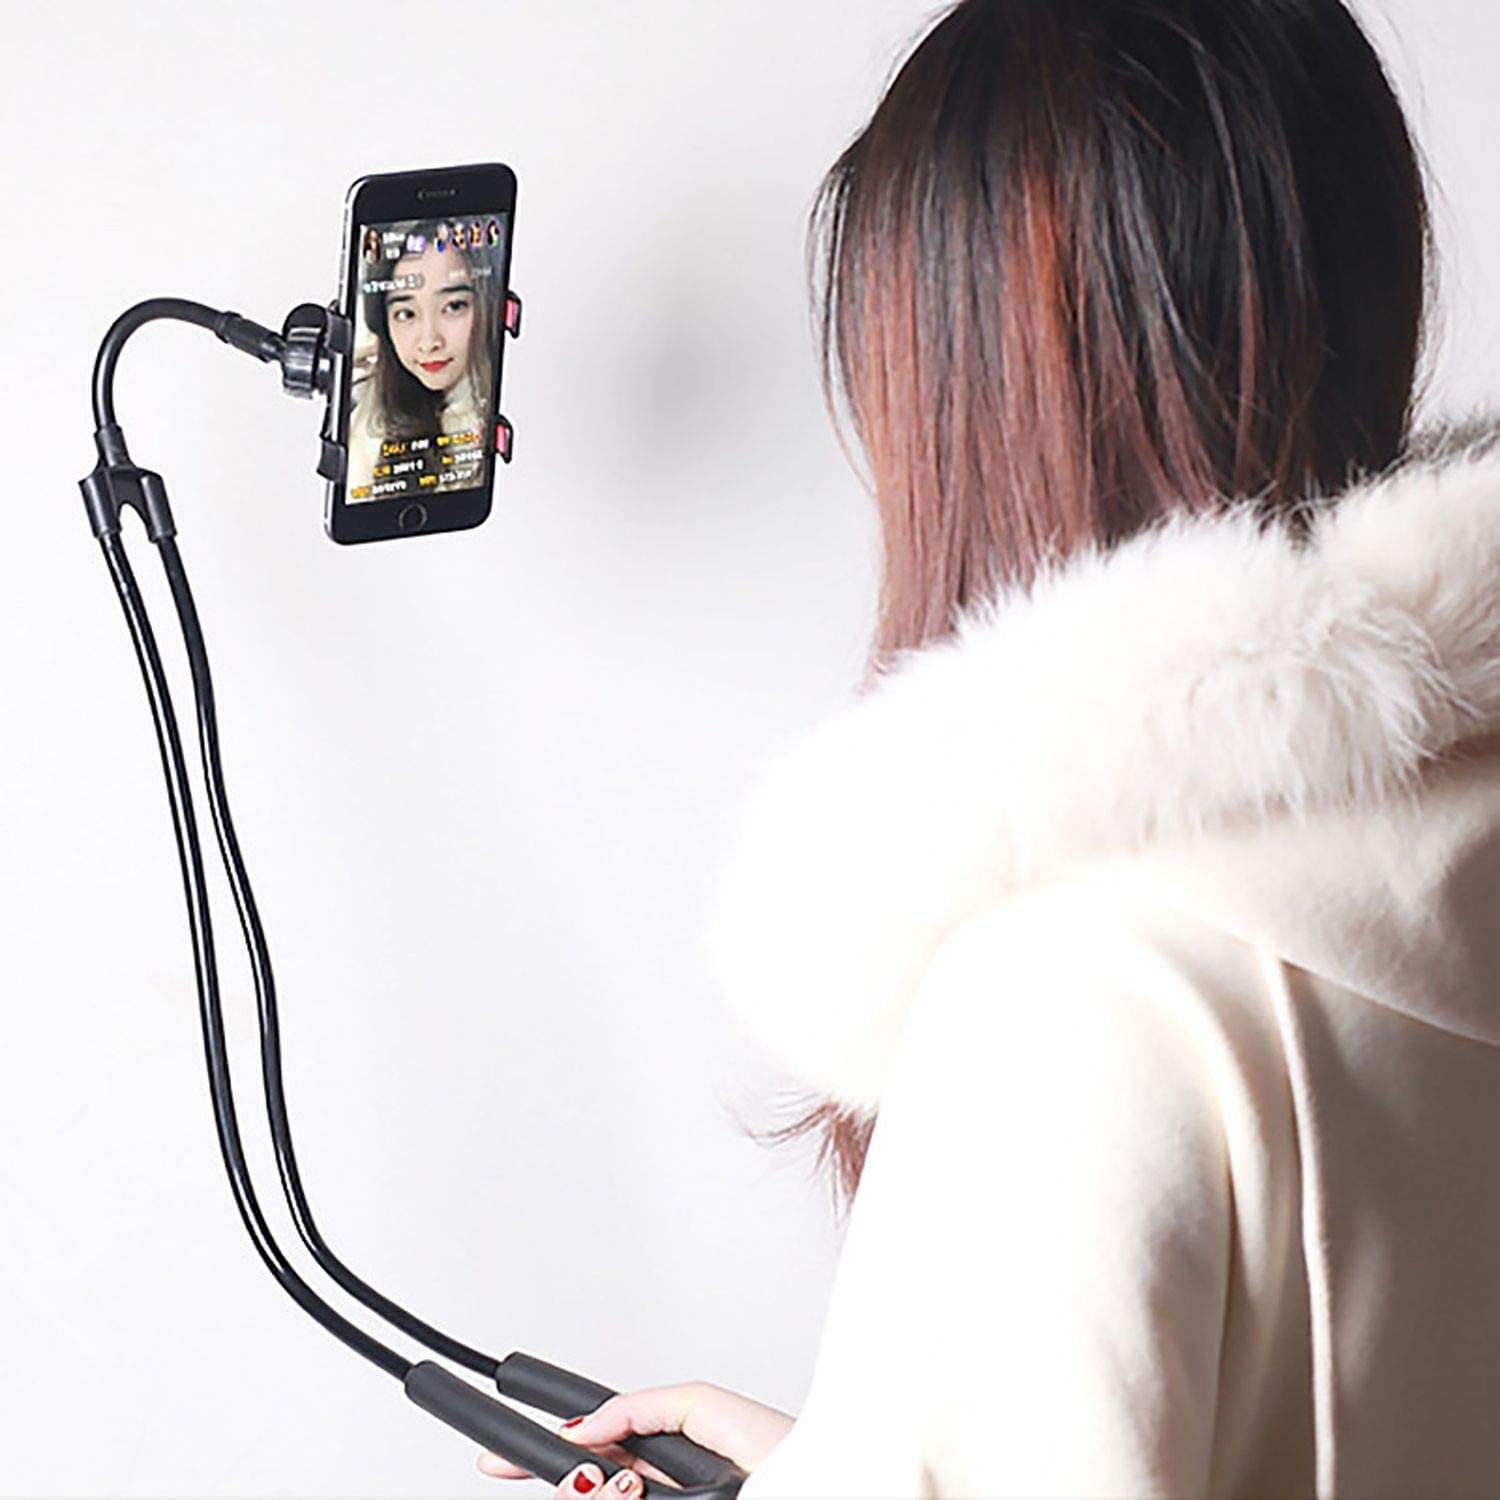 JIAX Portable Flexible Mobile Phone Holder Hanging Neck Lazy Necklace Bracket 360 Degree Smartphone Holder for iPhone Xiaomi Huawei